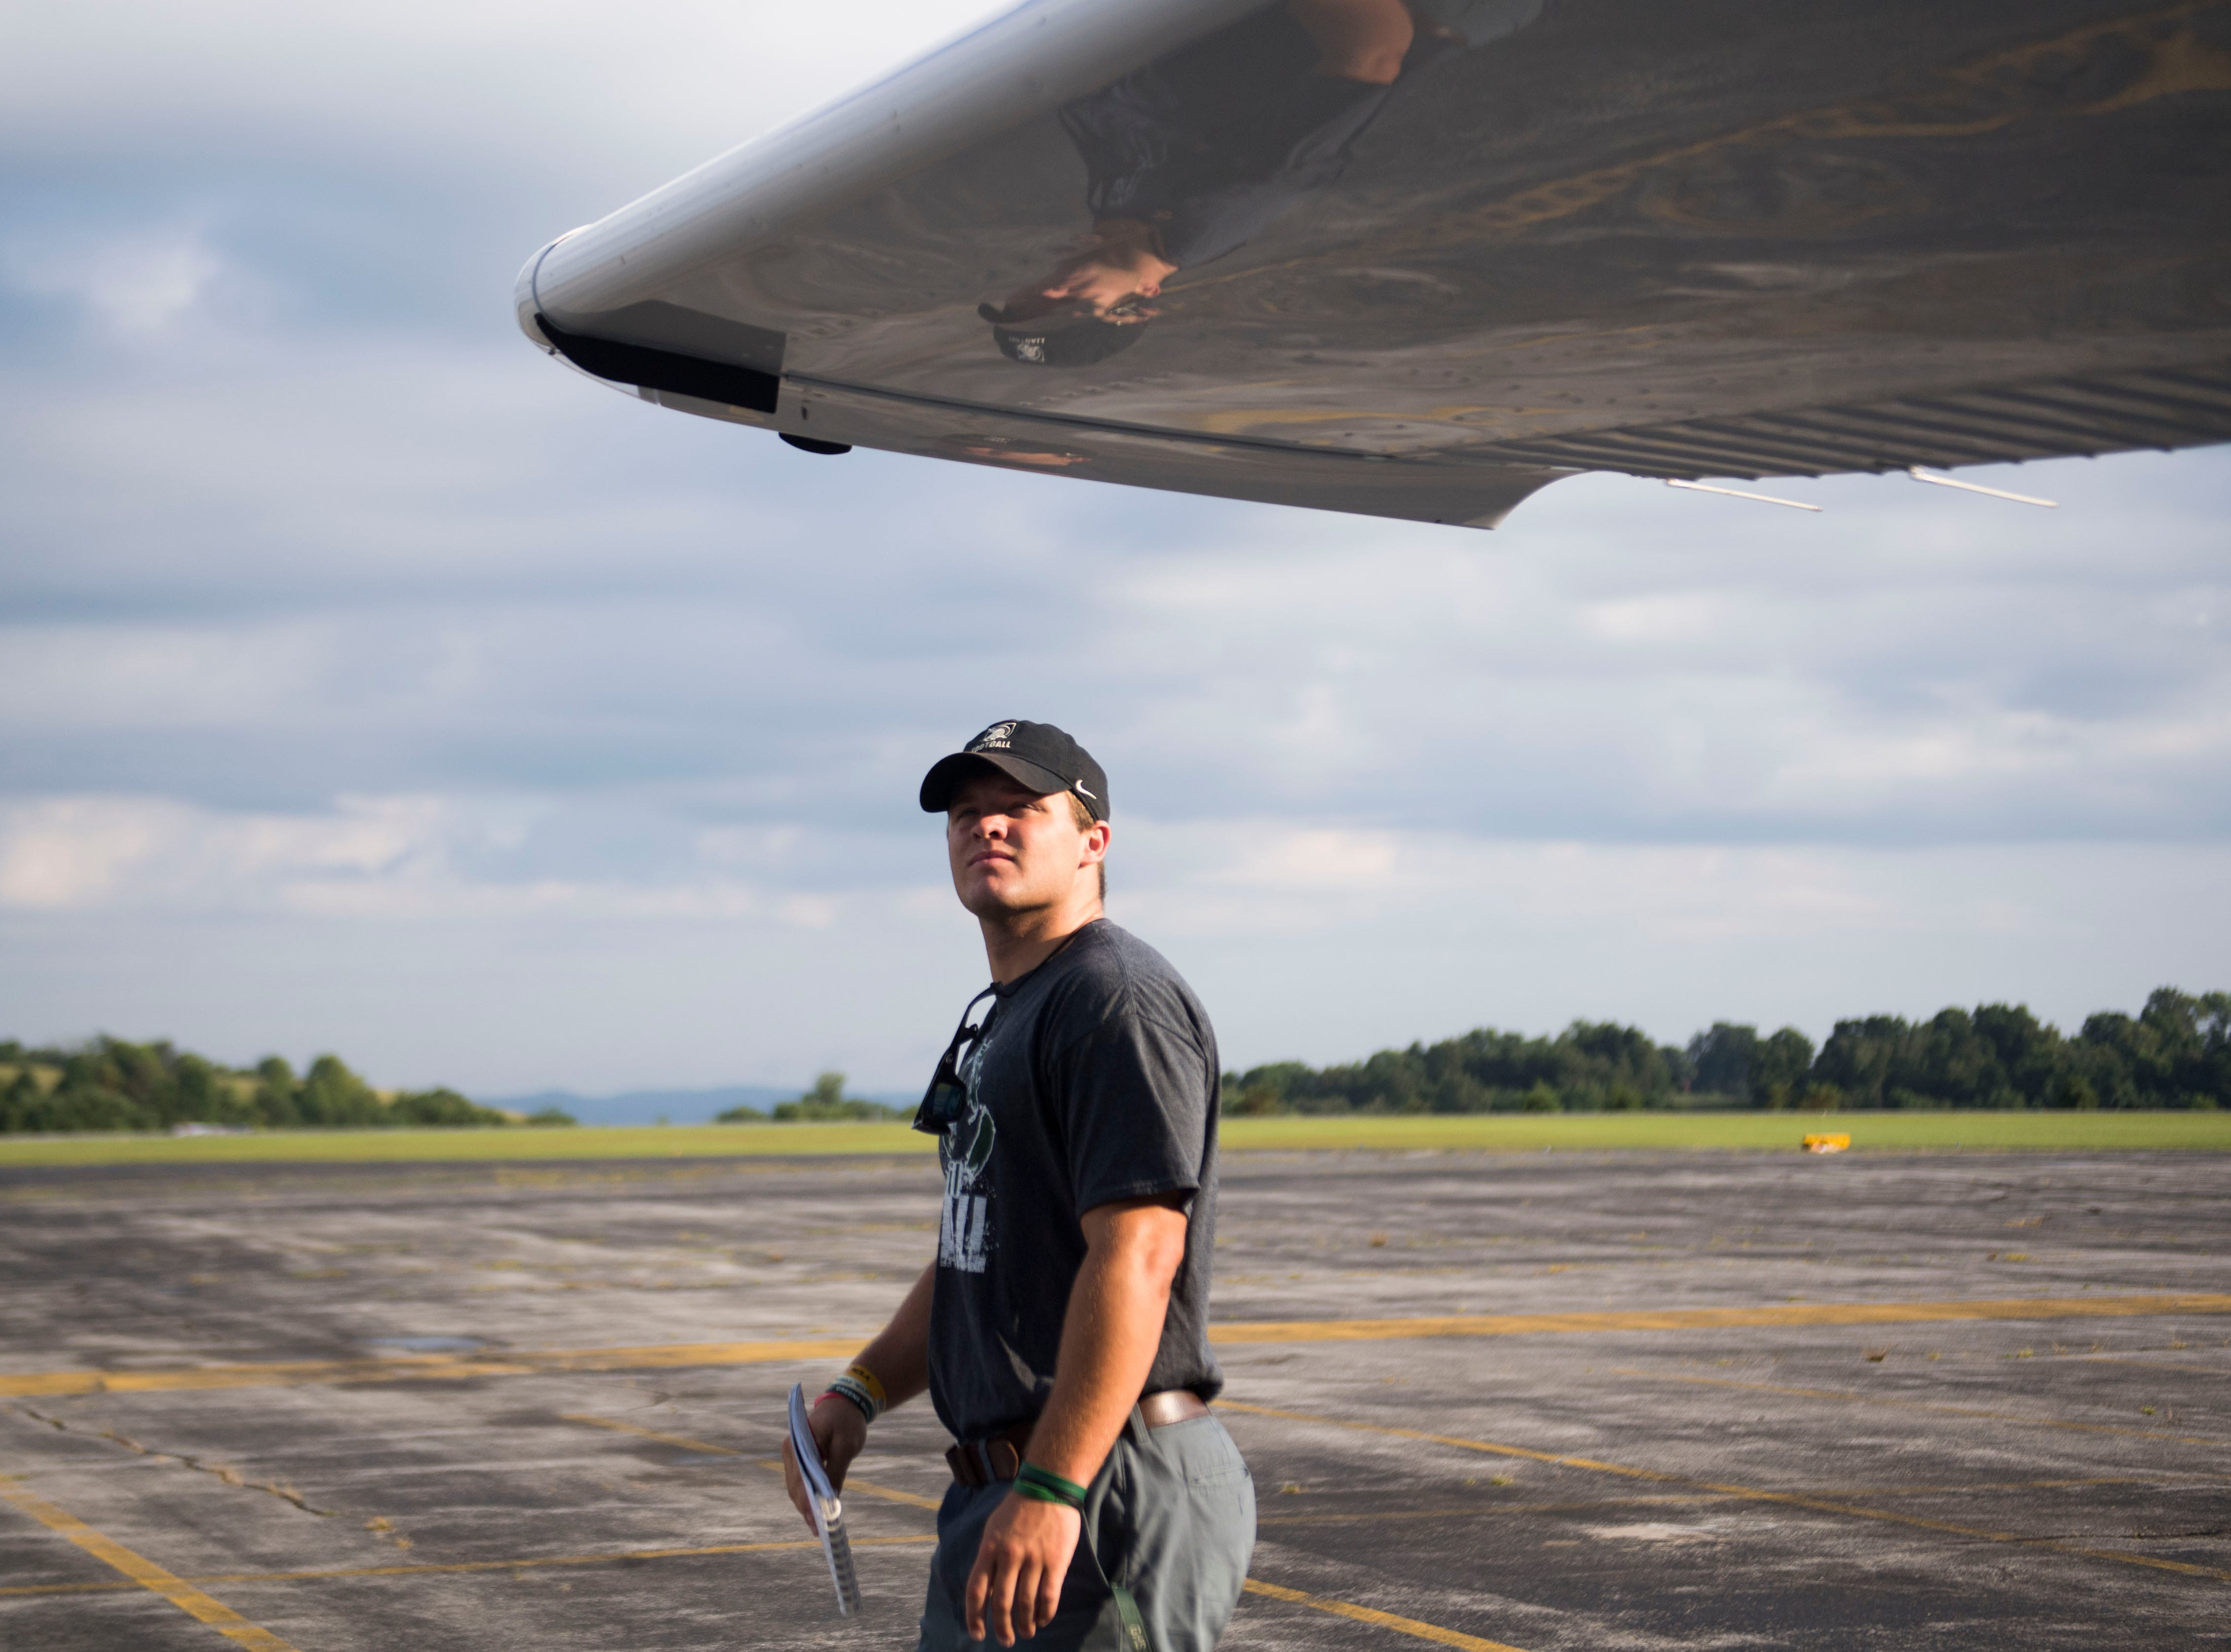 Greeneville quarterback Cade Ballard does a preflight check at the Greeneville-Greene County Municipal Airport, Wednesday, Aug. 8, 2018.